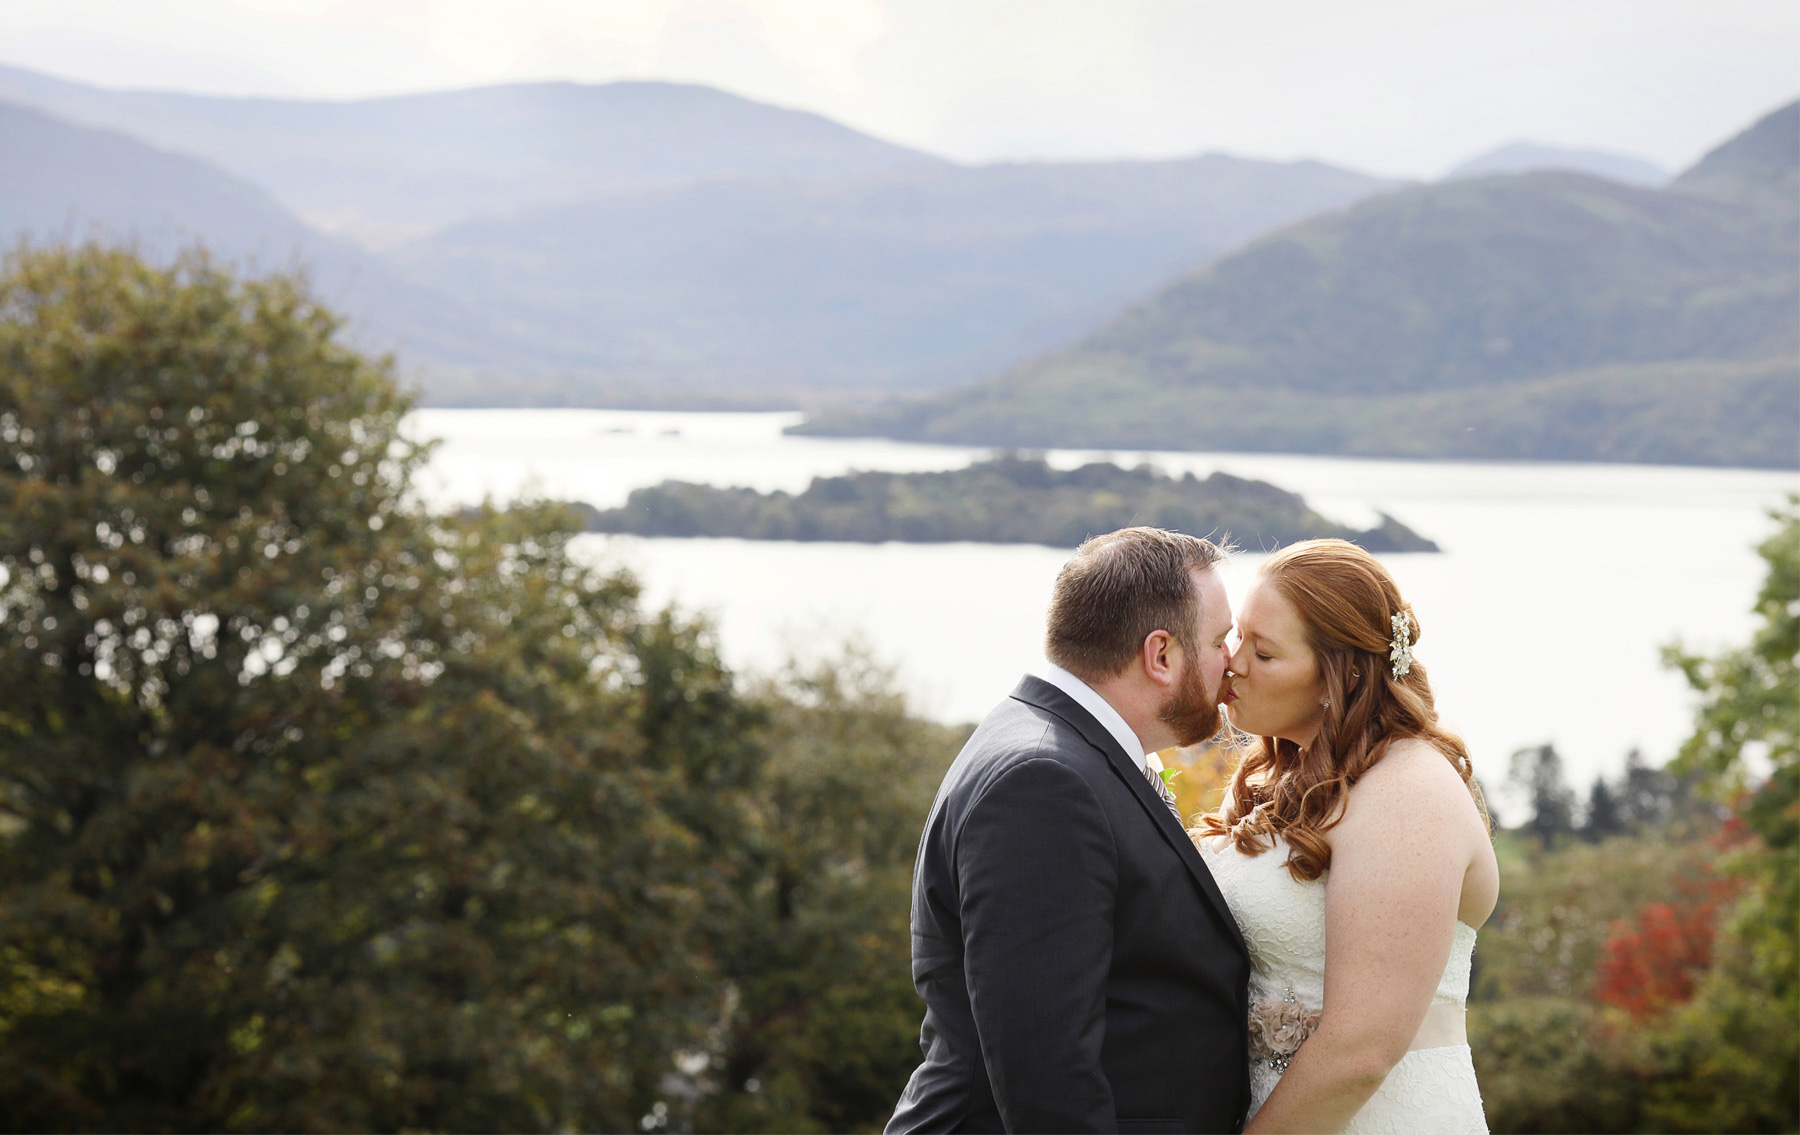 24-Kilarney-Ireland-Wedding-Photographer-by-Andrew-Vick-Photography-Fall-Autumn-Destination-First-Meeting-Look-Bride-Groom-Kiss-Landscape-Ocean-Becca-and-Donal.jpg